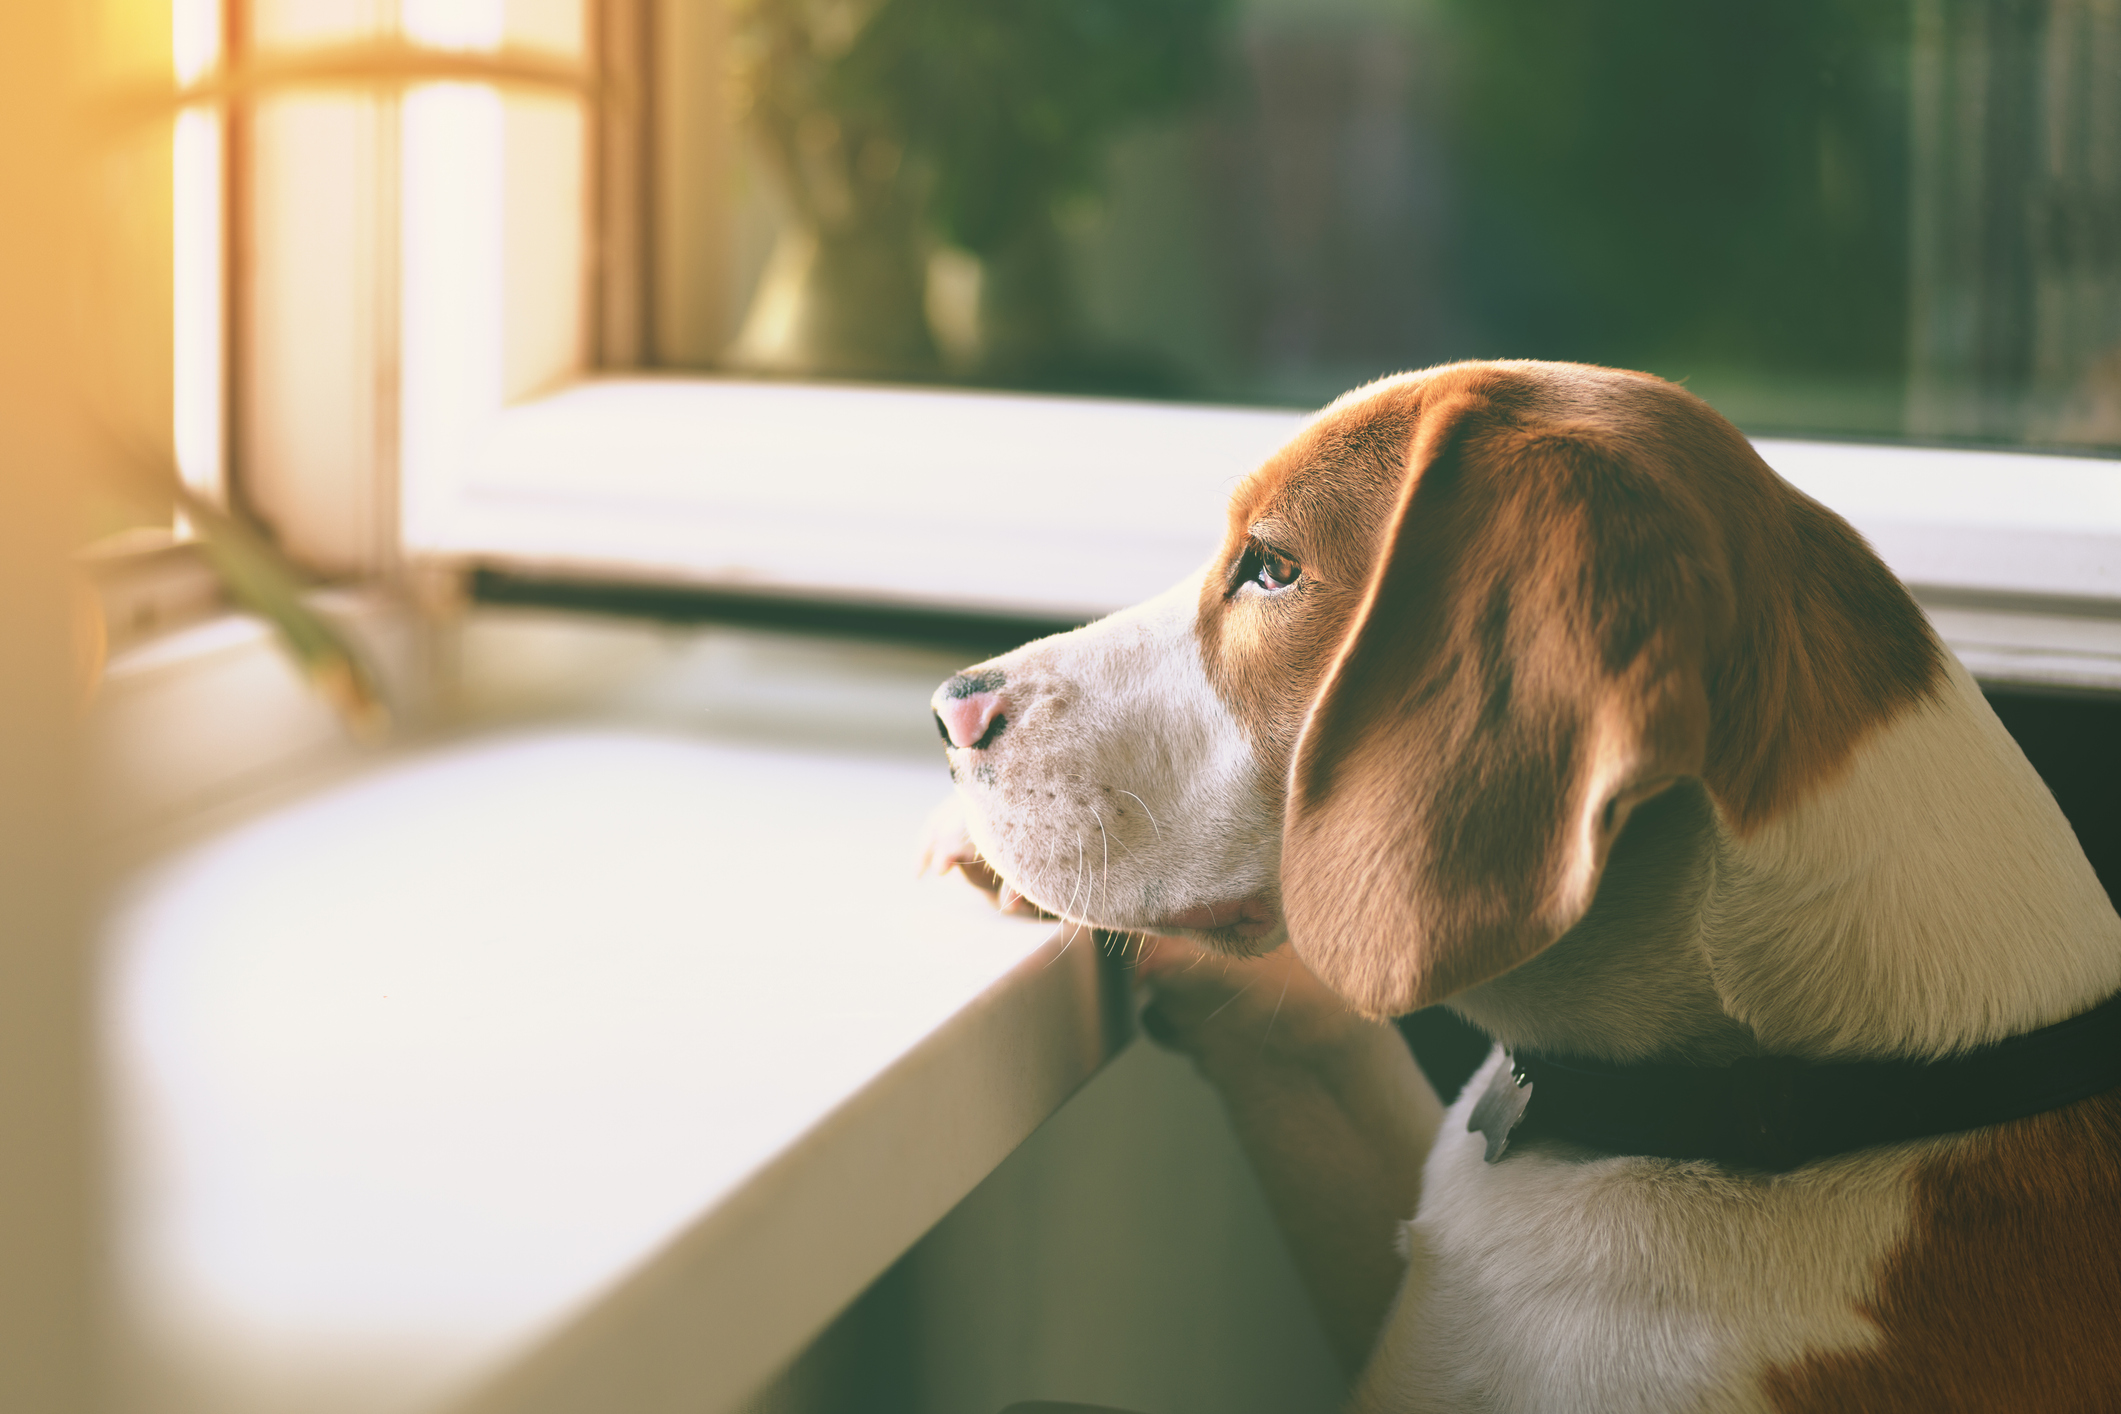 A sad-beagle looking out the window in the living room